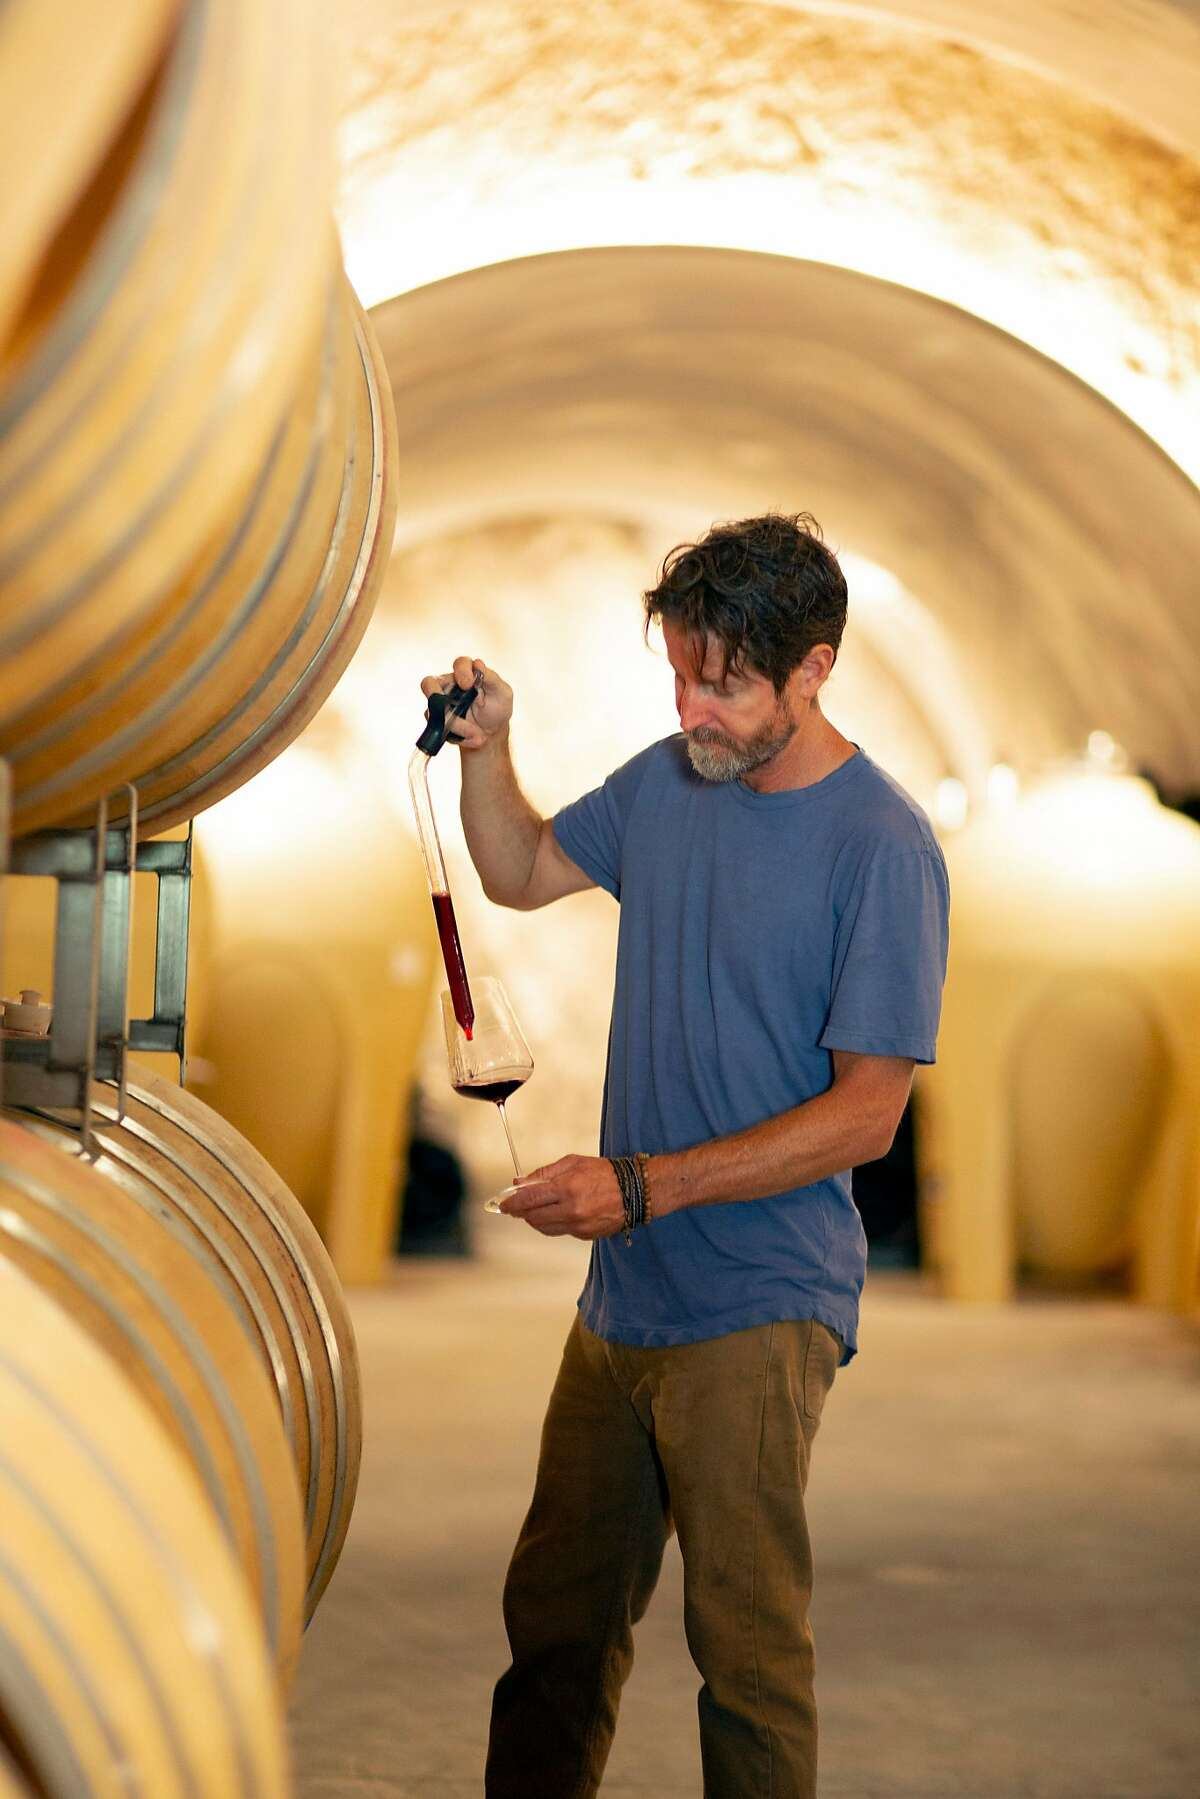 Winemaker Justin Smith checks wine made from Graciano grapes at Saxum Vineyards on Friday, 8/3, 2018 near Paso Robles, California. Hundreds of thousands of plants believed to be a Spanish clone of the Mourvedre grape ultimately turned out to be Graciano, an obscure variety from Rioja.